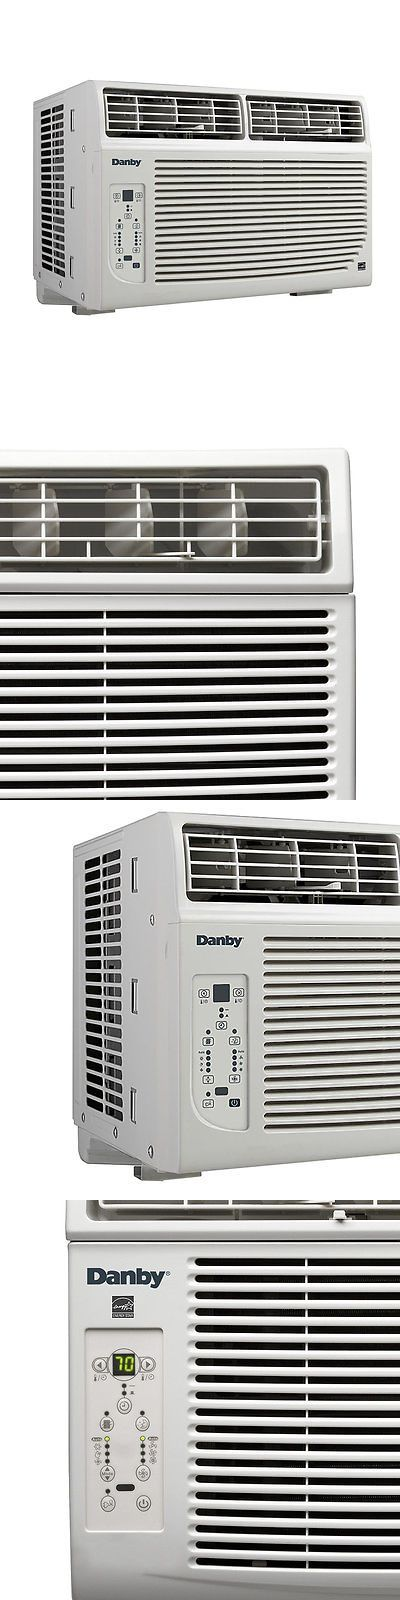 Air Conditioners 69202: Danby 12,000 Btu Energy Star-Compliant Window Air Conditioner | Dac120eub7gdb -> BUY IT NOW ONLY: $310.99 on eBay!